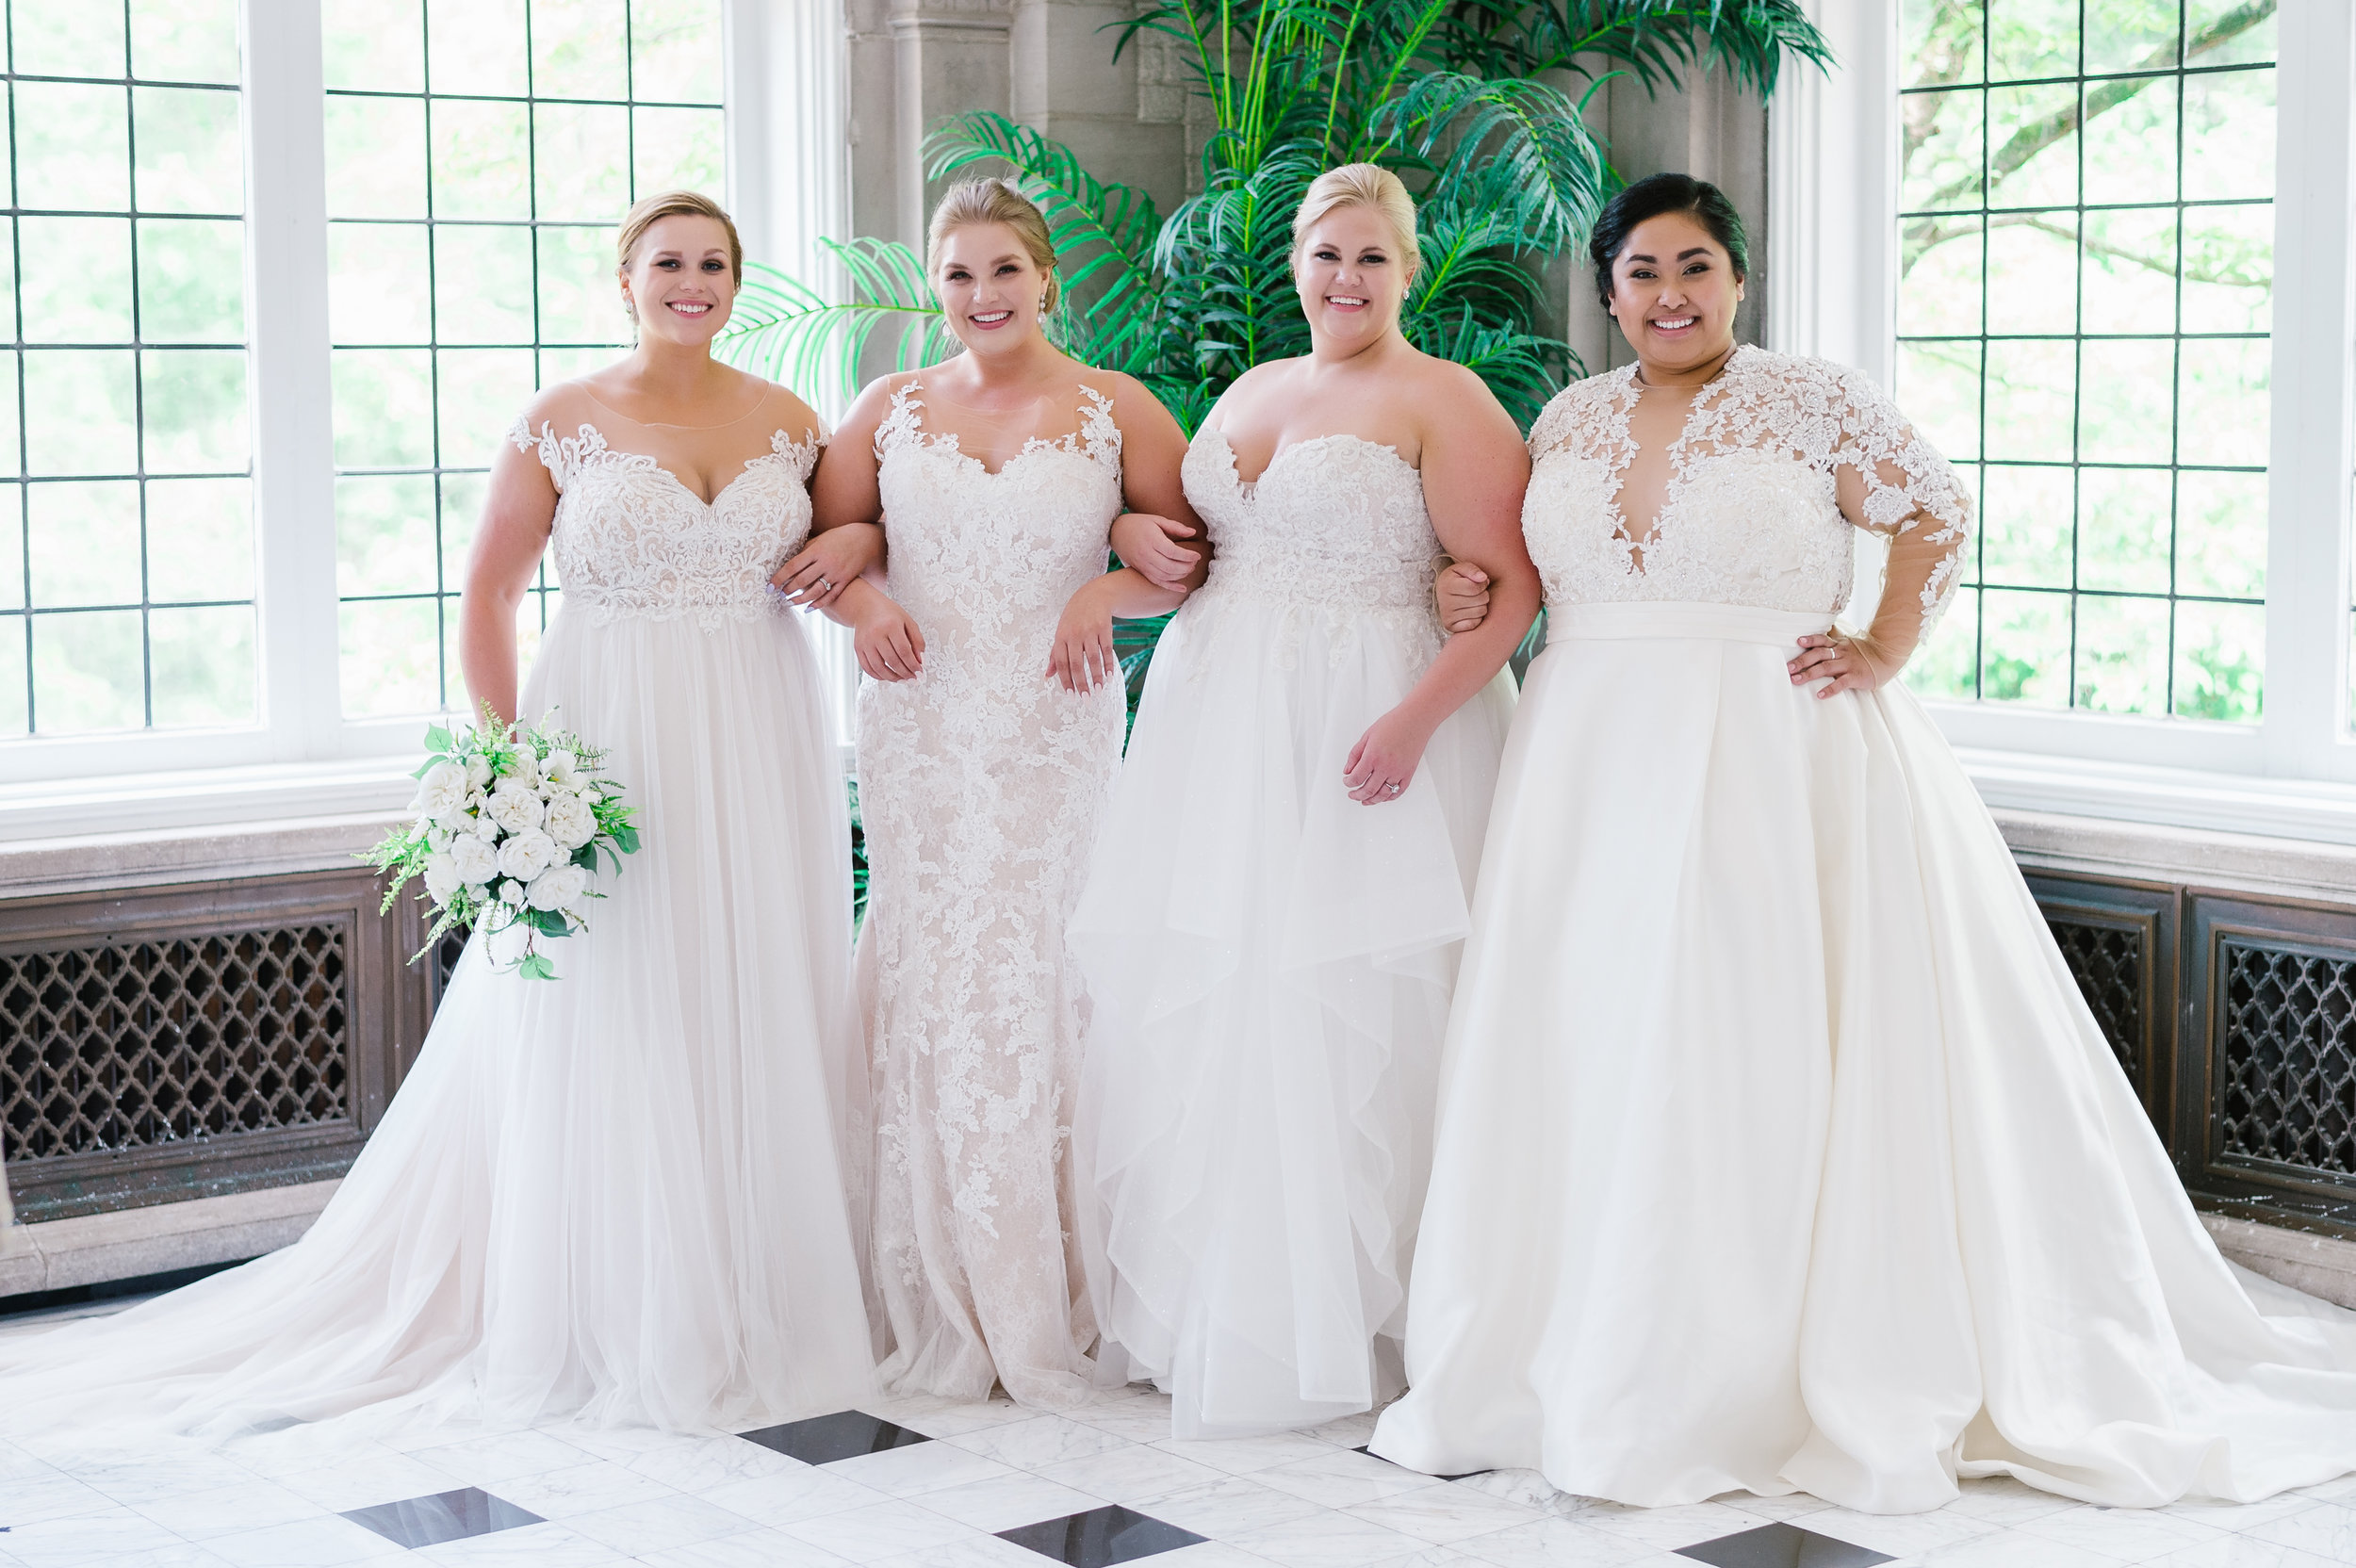 About Us! - Our bridal boutiques were created with you in mind. We are a specialty bridal salon. In every sense of the word, our selection and top designers are specifically chosen for a reason. All of our samples start from size 14 to 34 with over 400 unique wedding dress styles in each store. This dedication to women's bodies who may not fit into the